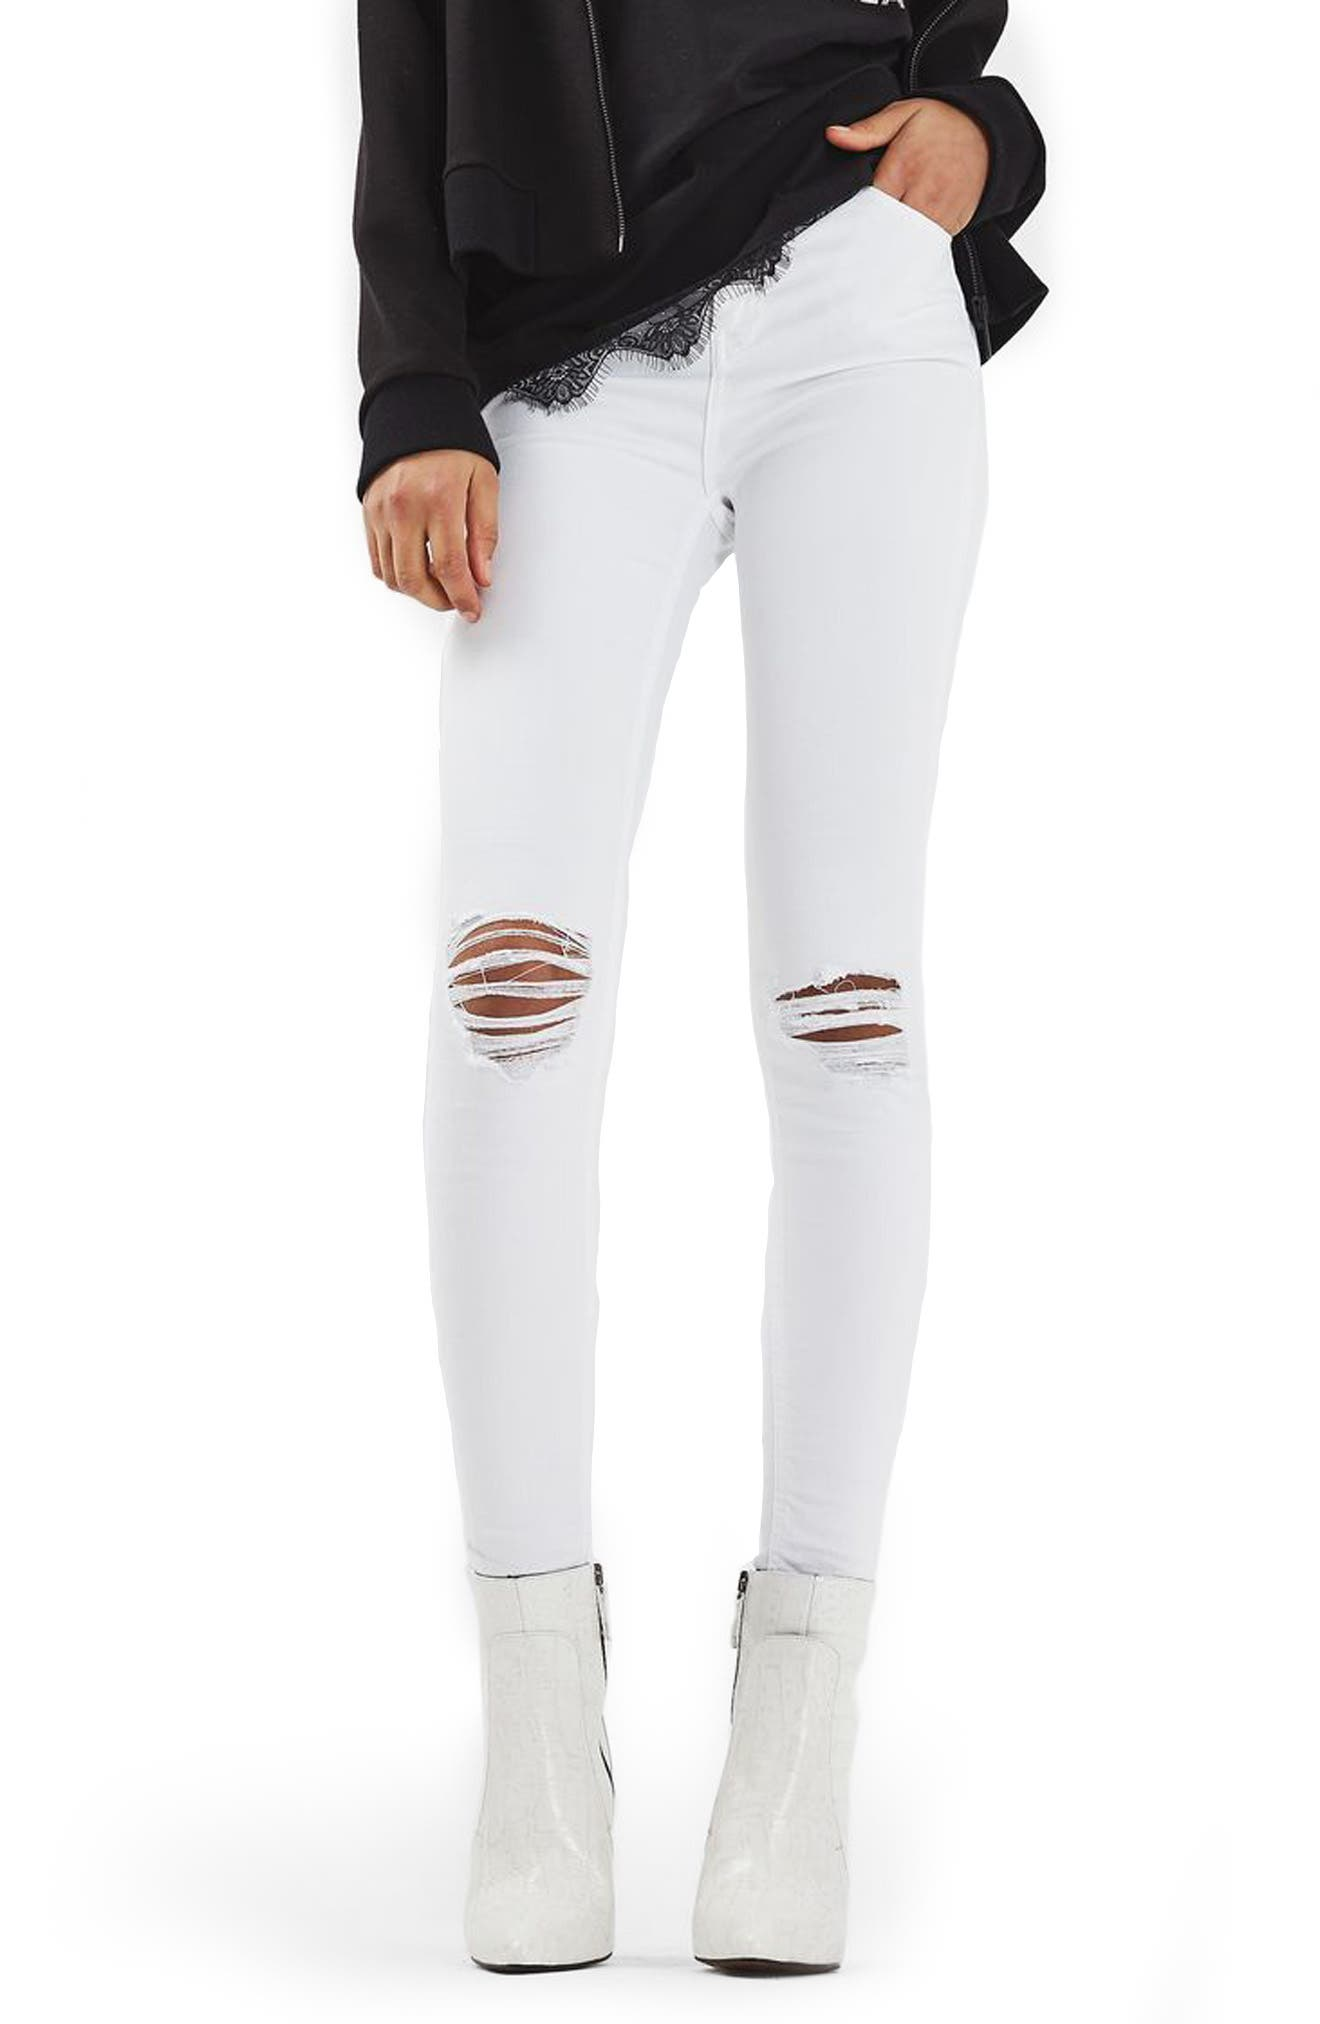 Jamie Ripped Skinny Jeans,                             Main thumbnail 1, color,                             100